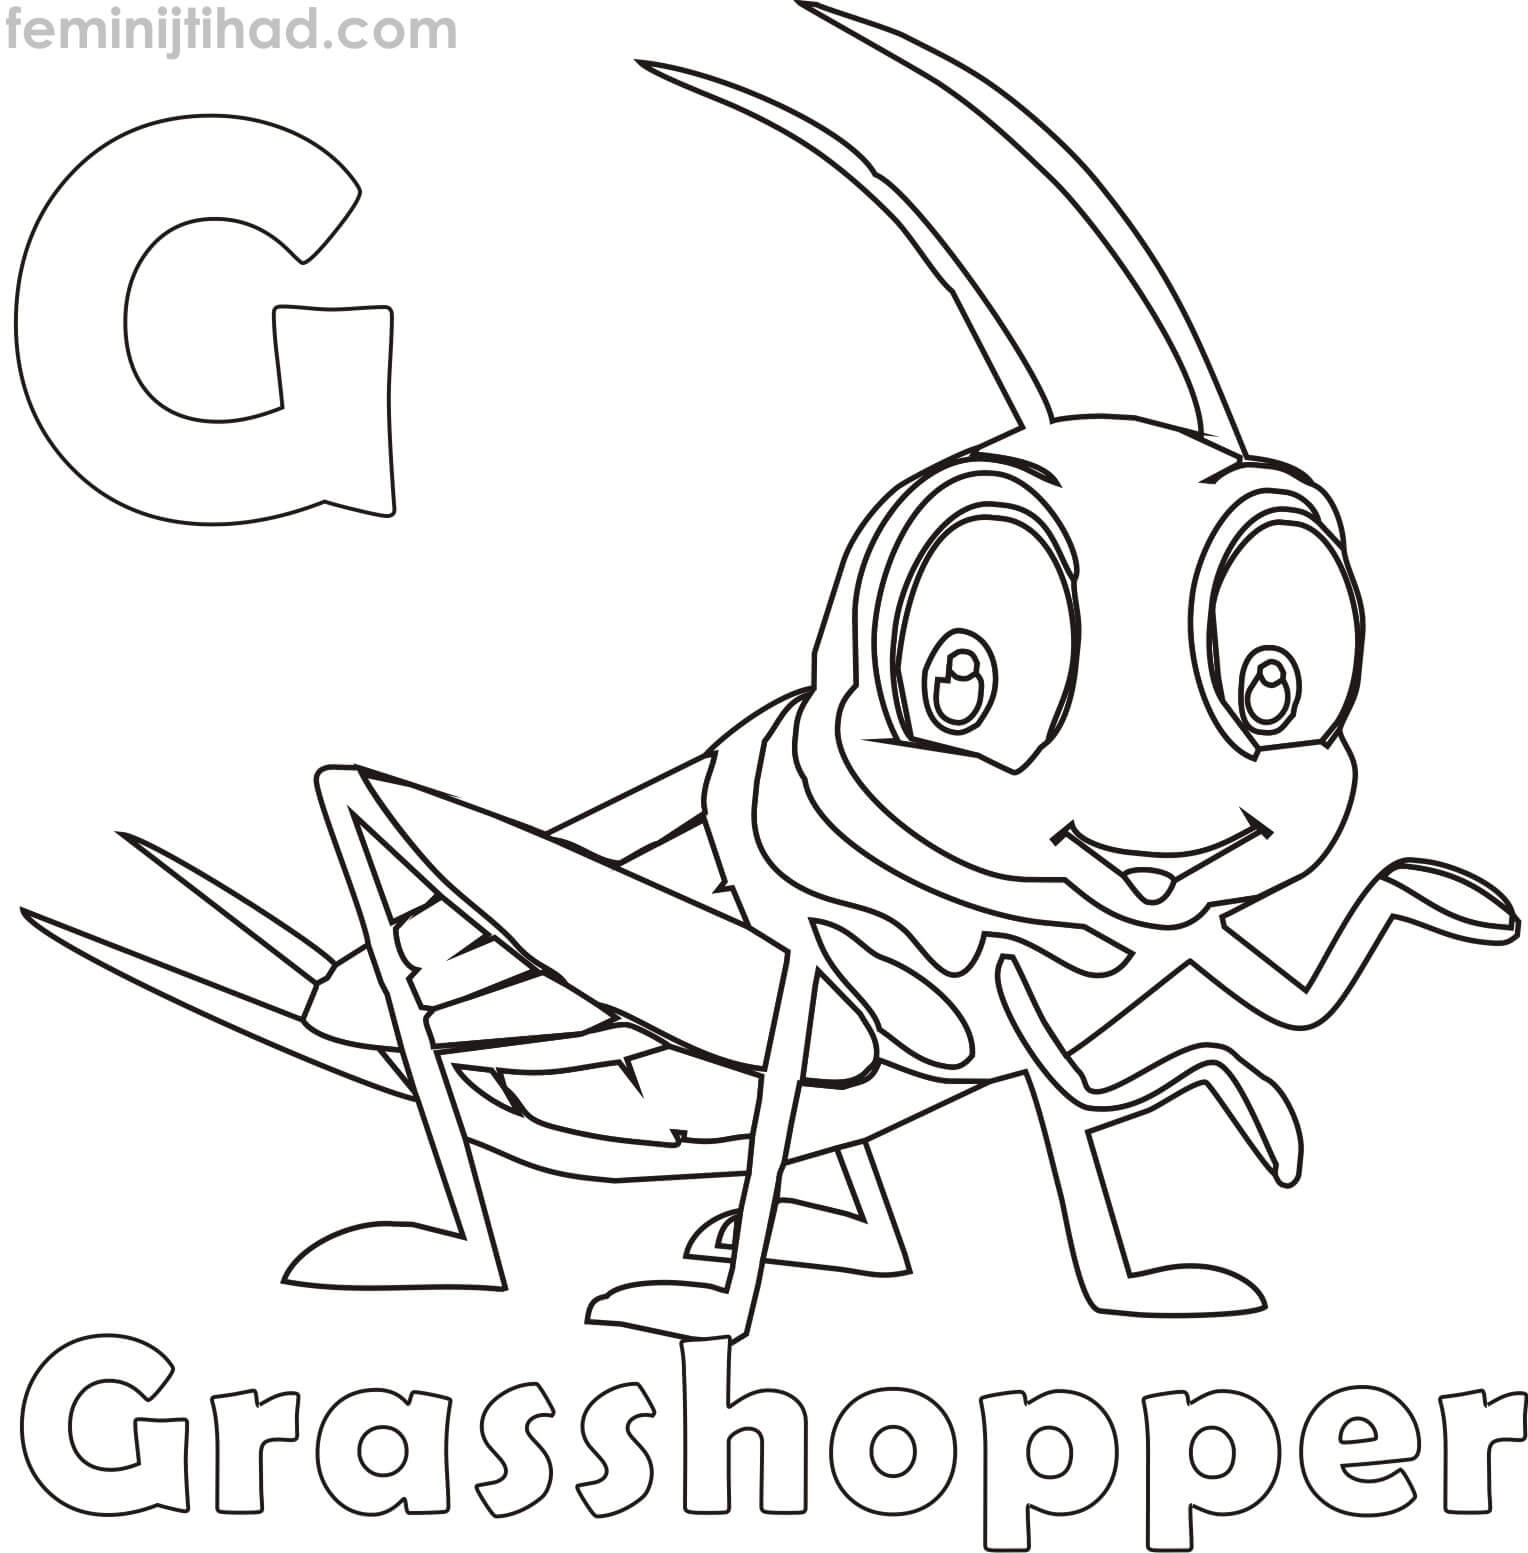 1528x1553 Grasshopper Coloring Pages Coloring Pages For Kids